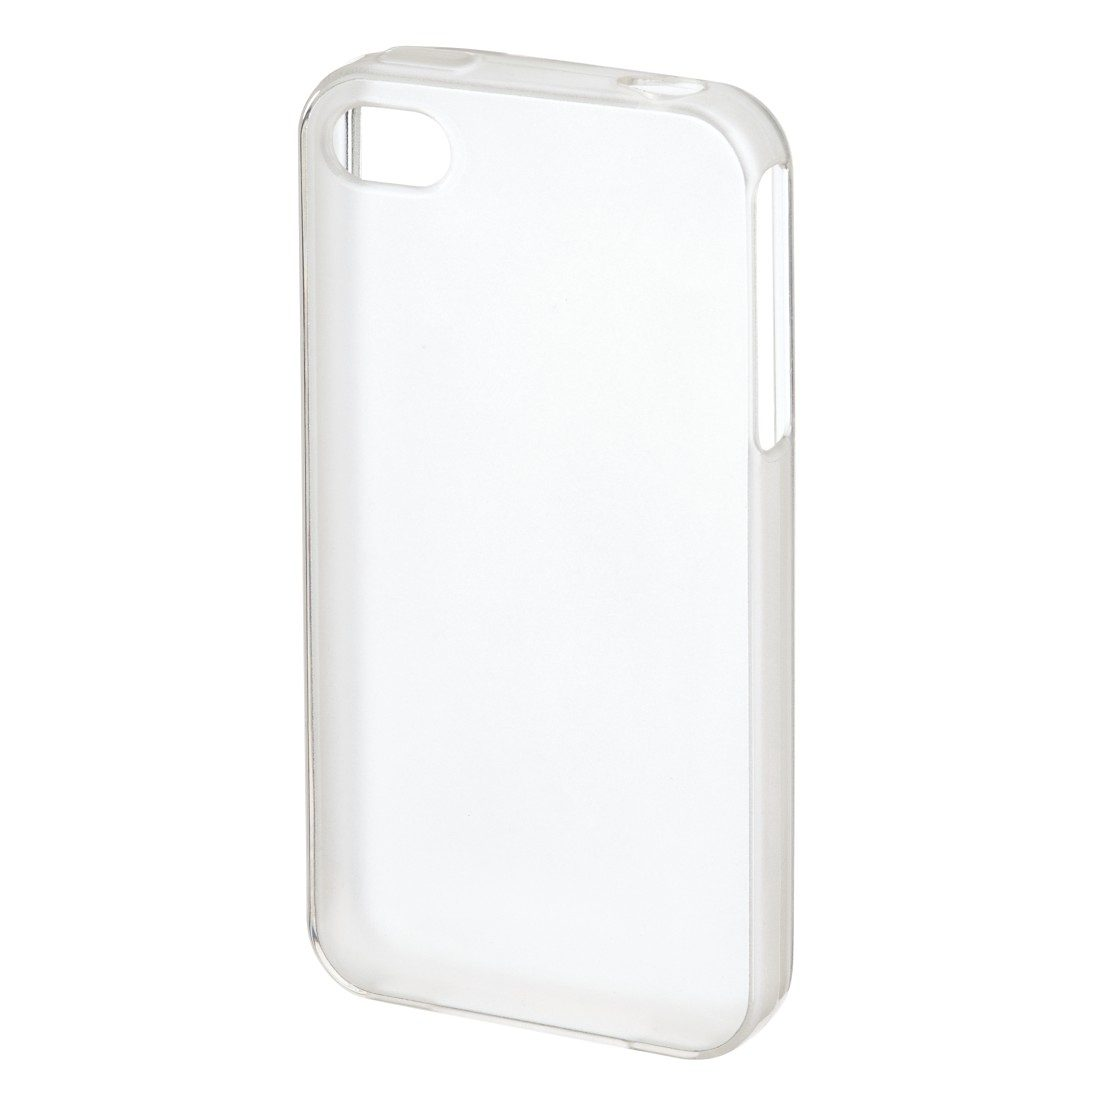 Hama Cover Crystal für Apple iPhone 4/4s, Flexible Hülle »Transparent«